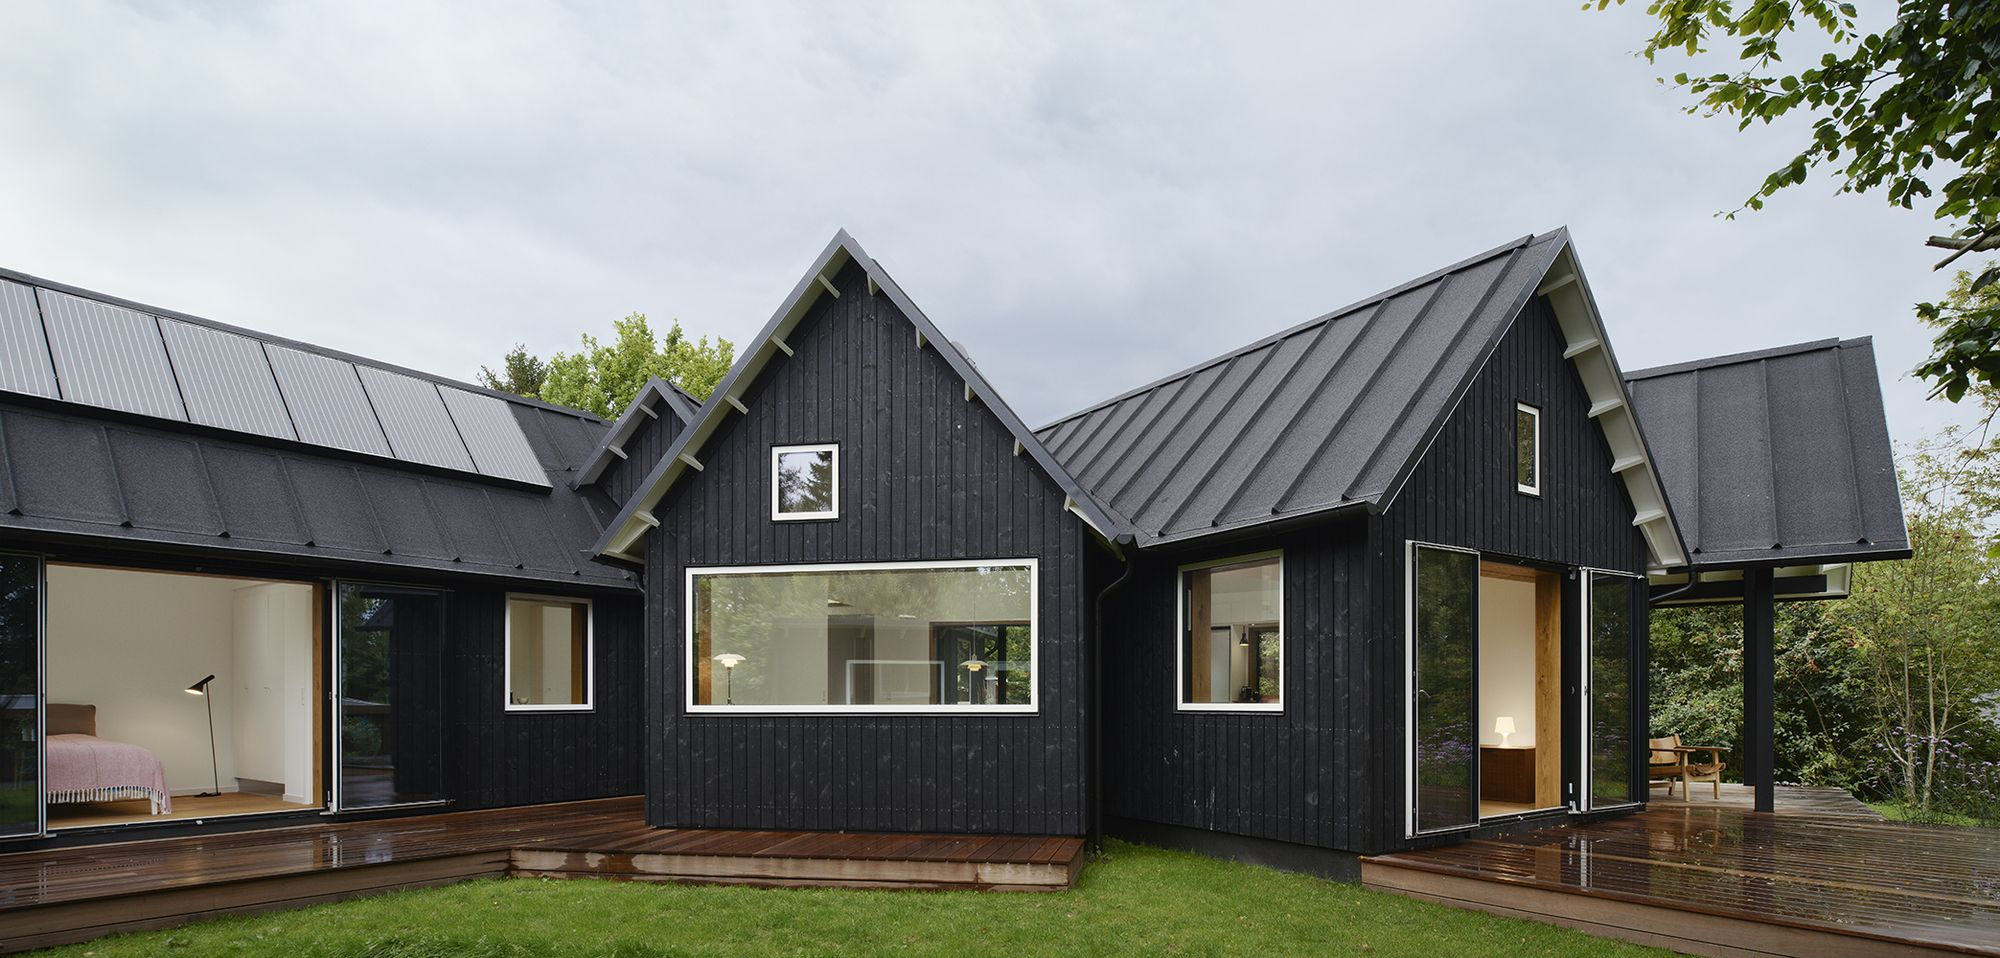 Danish Modern Architecture Residential modern architecture and interior design #1 - danish summer house